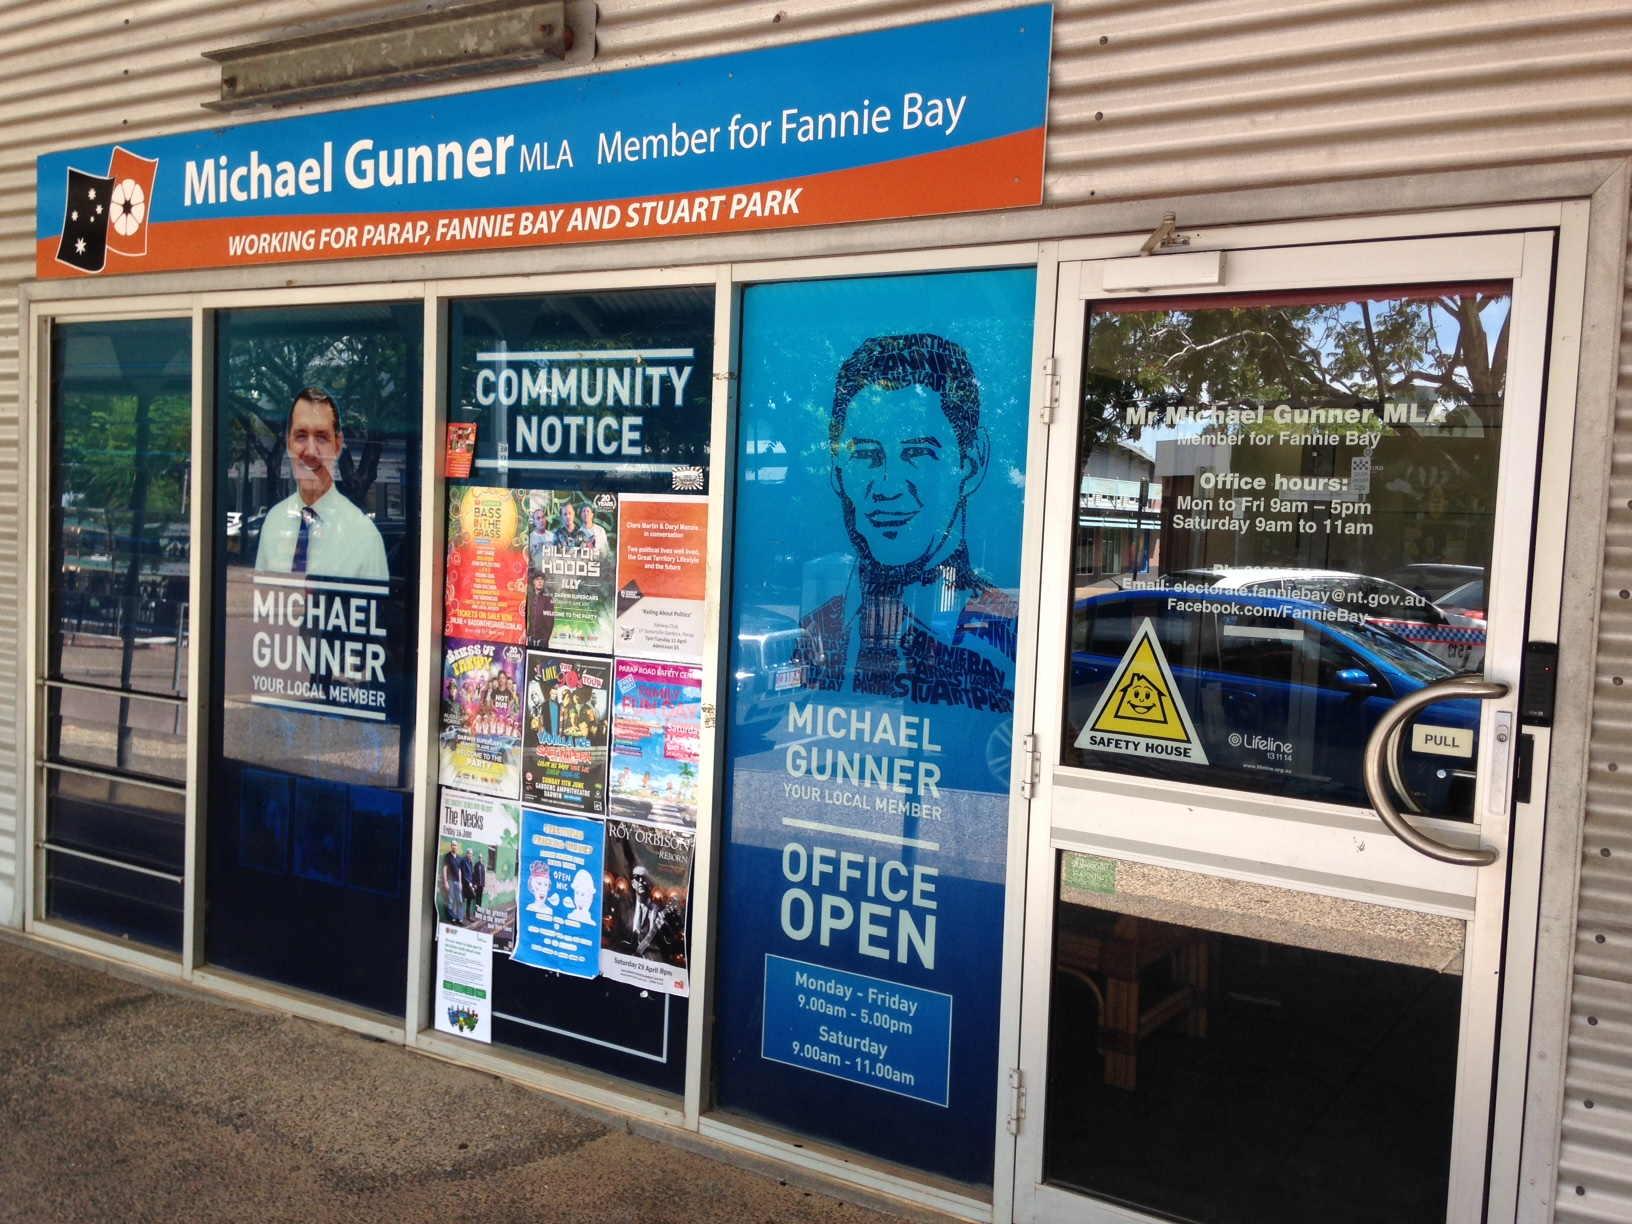 Michael Gunner – Member for Fannie Bay